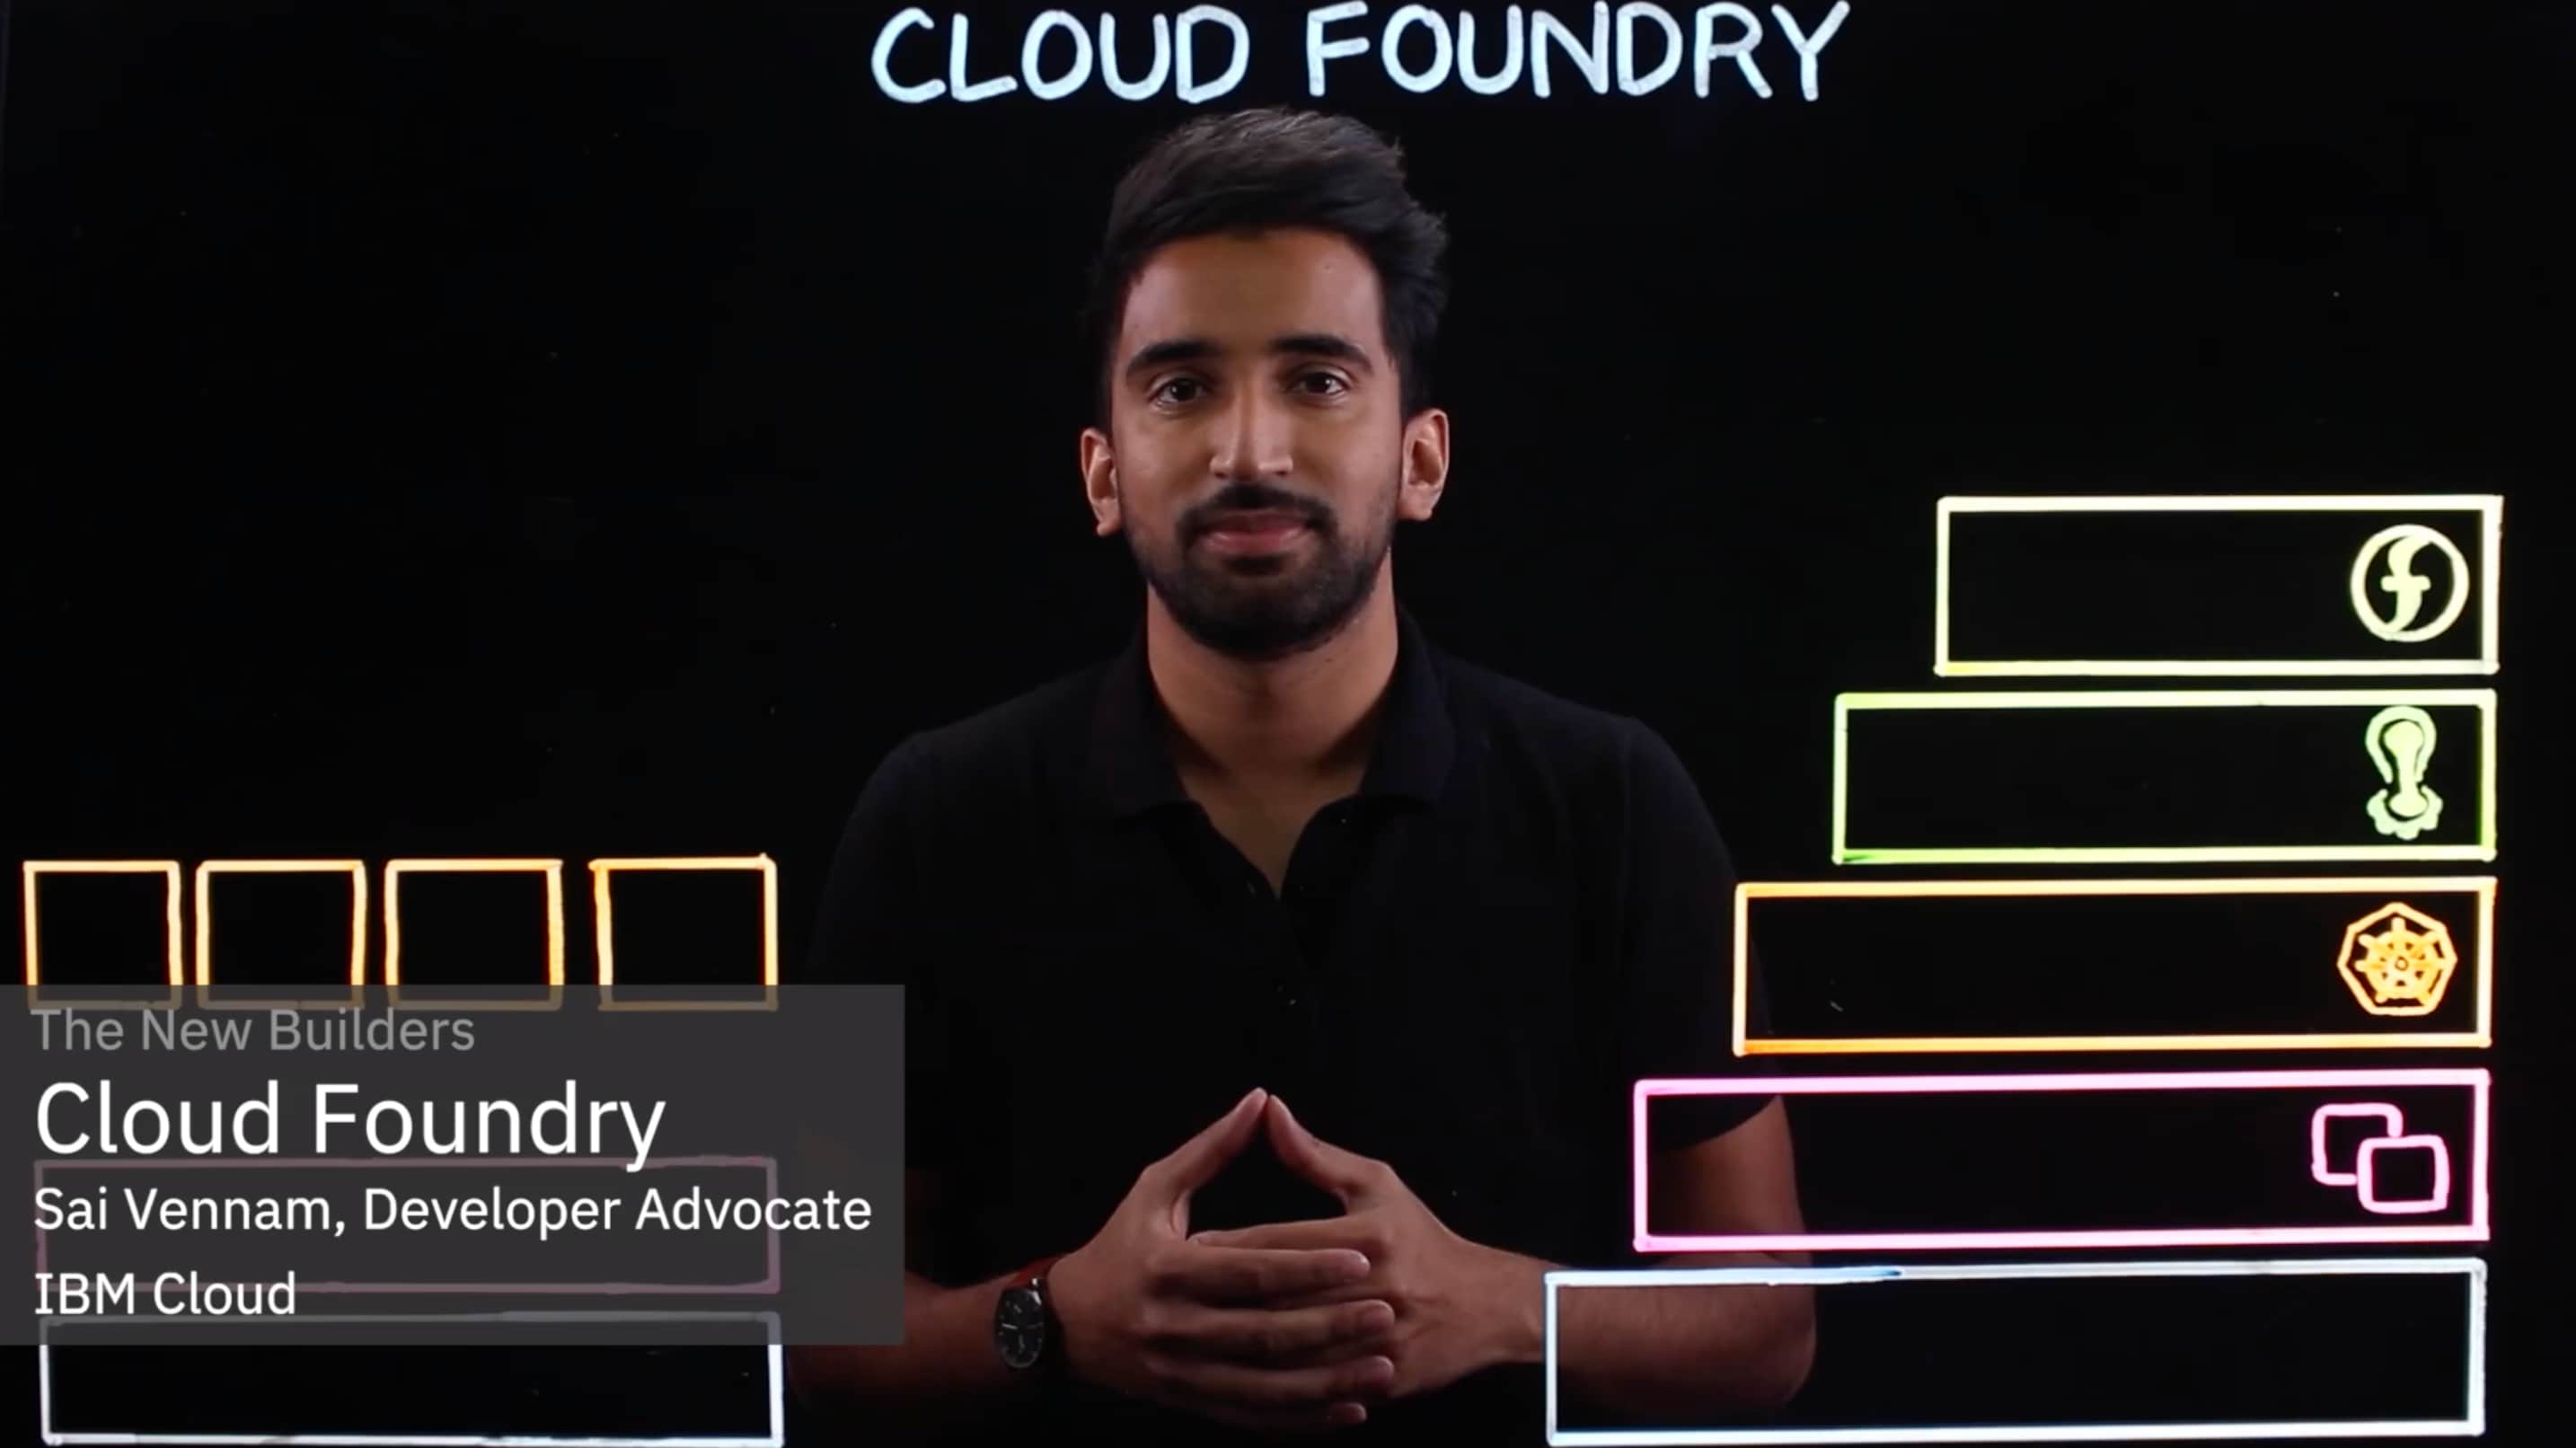 Cloud Foundry: An open source Platform-as-a-Service (PaaS)